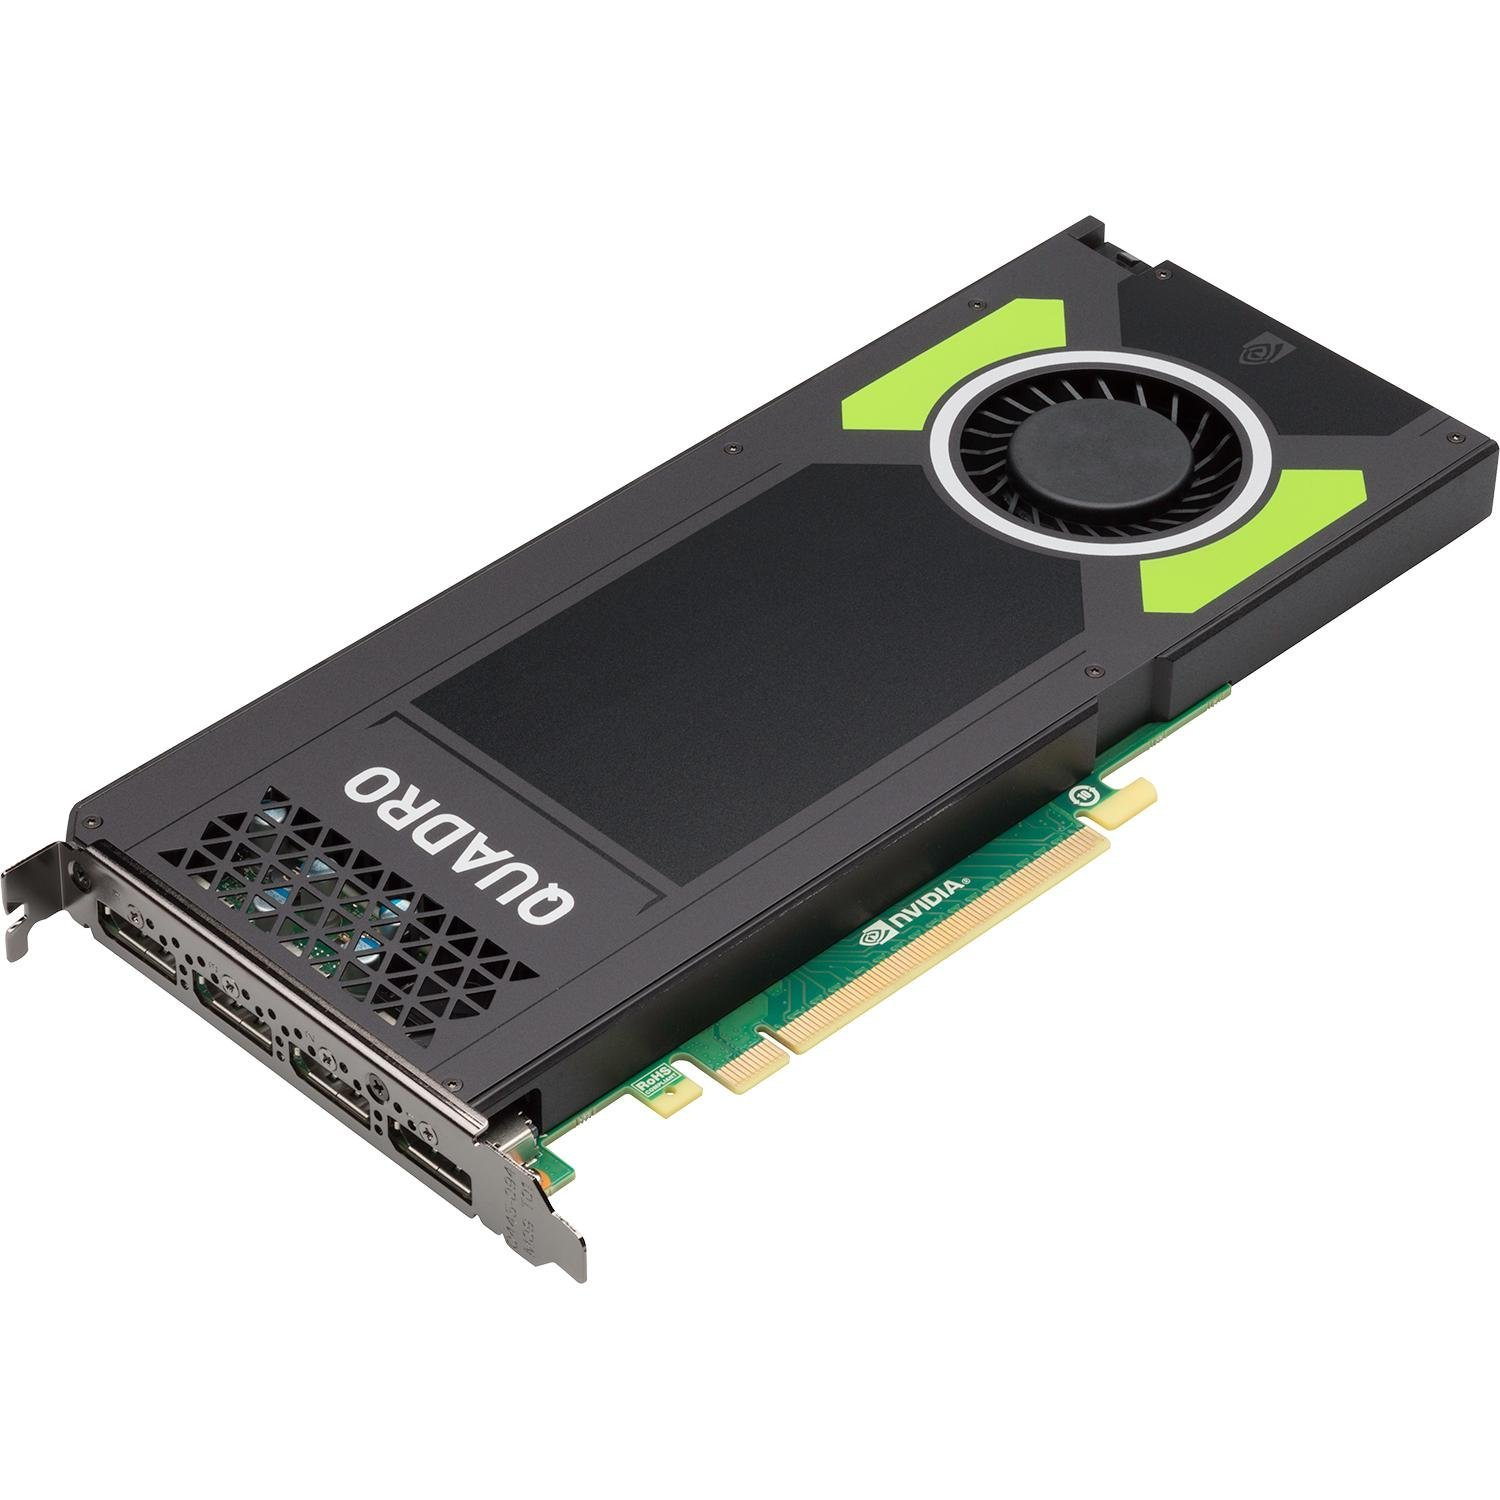 nvidia quadro m4000 extreme performance in a single slot form factor